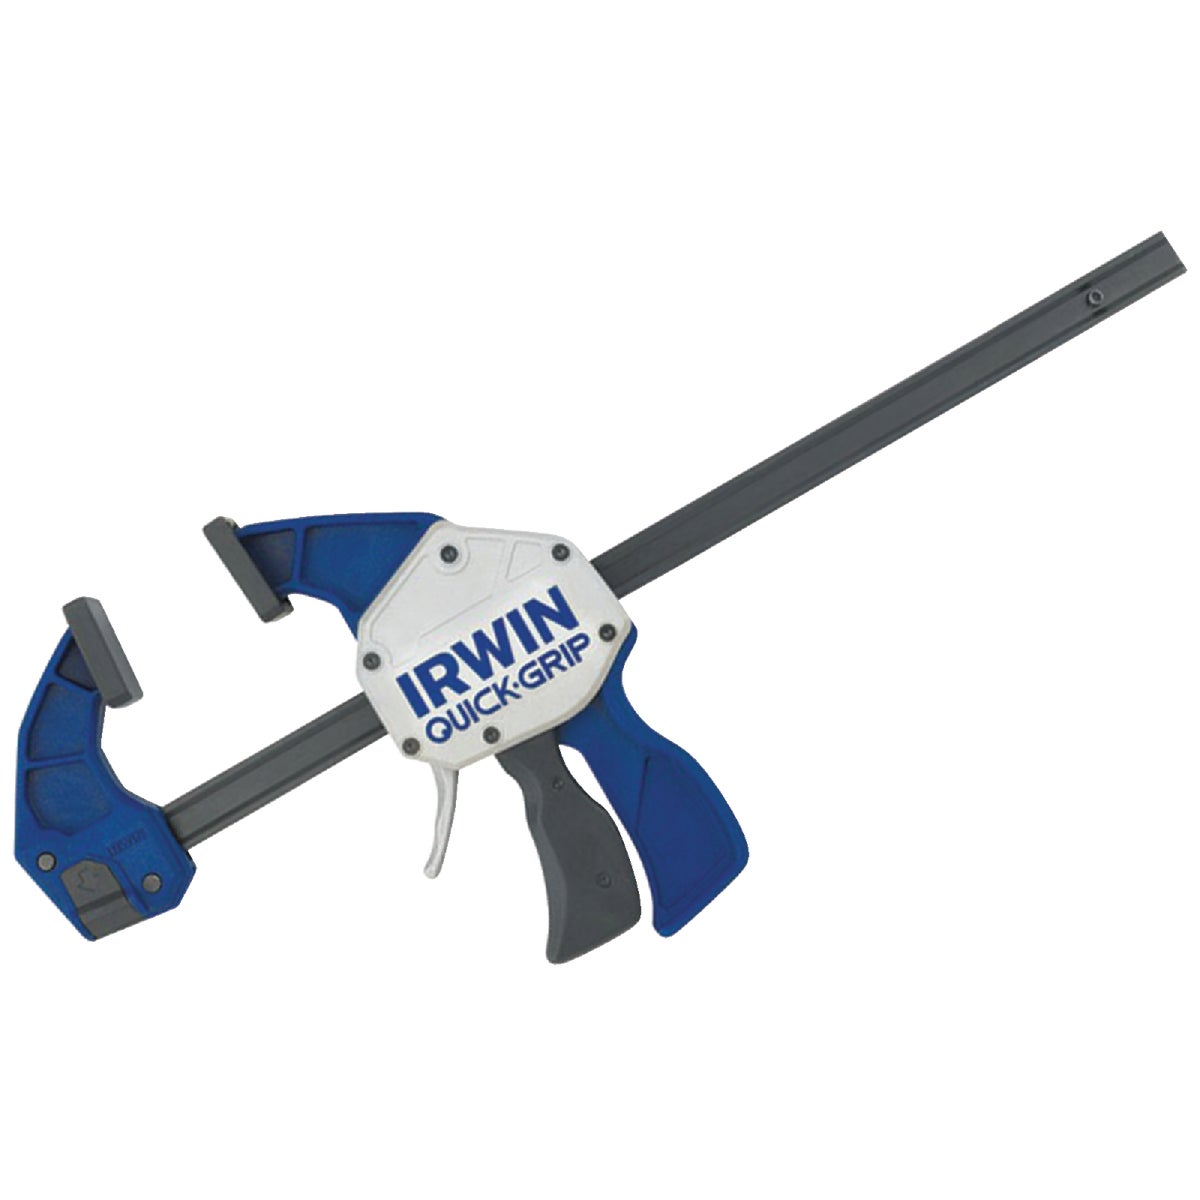 "12"" XP BAR CLAMP - 2021412N by Irwin Industr Tool"